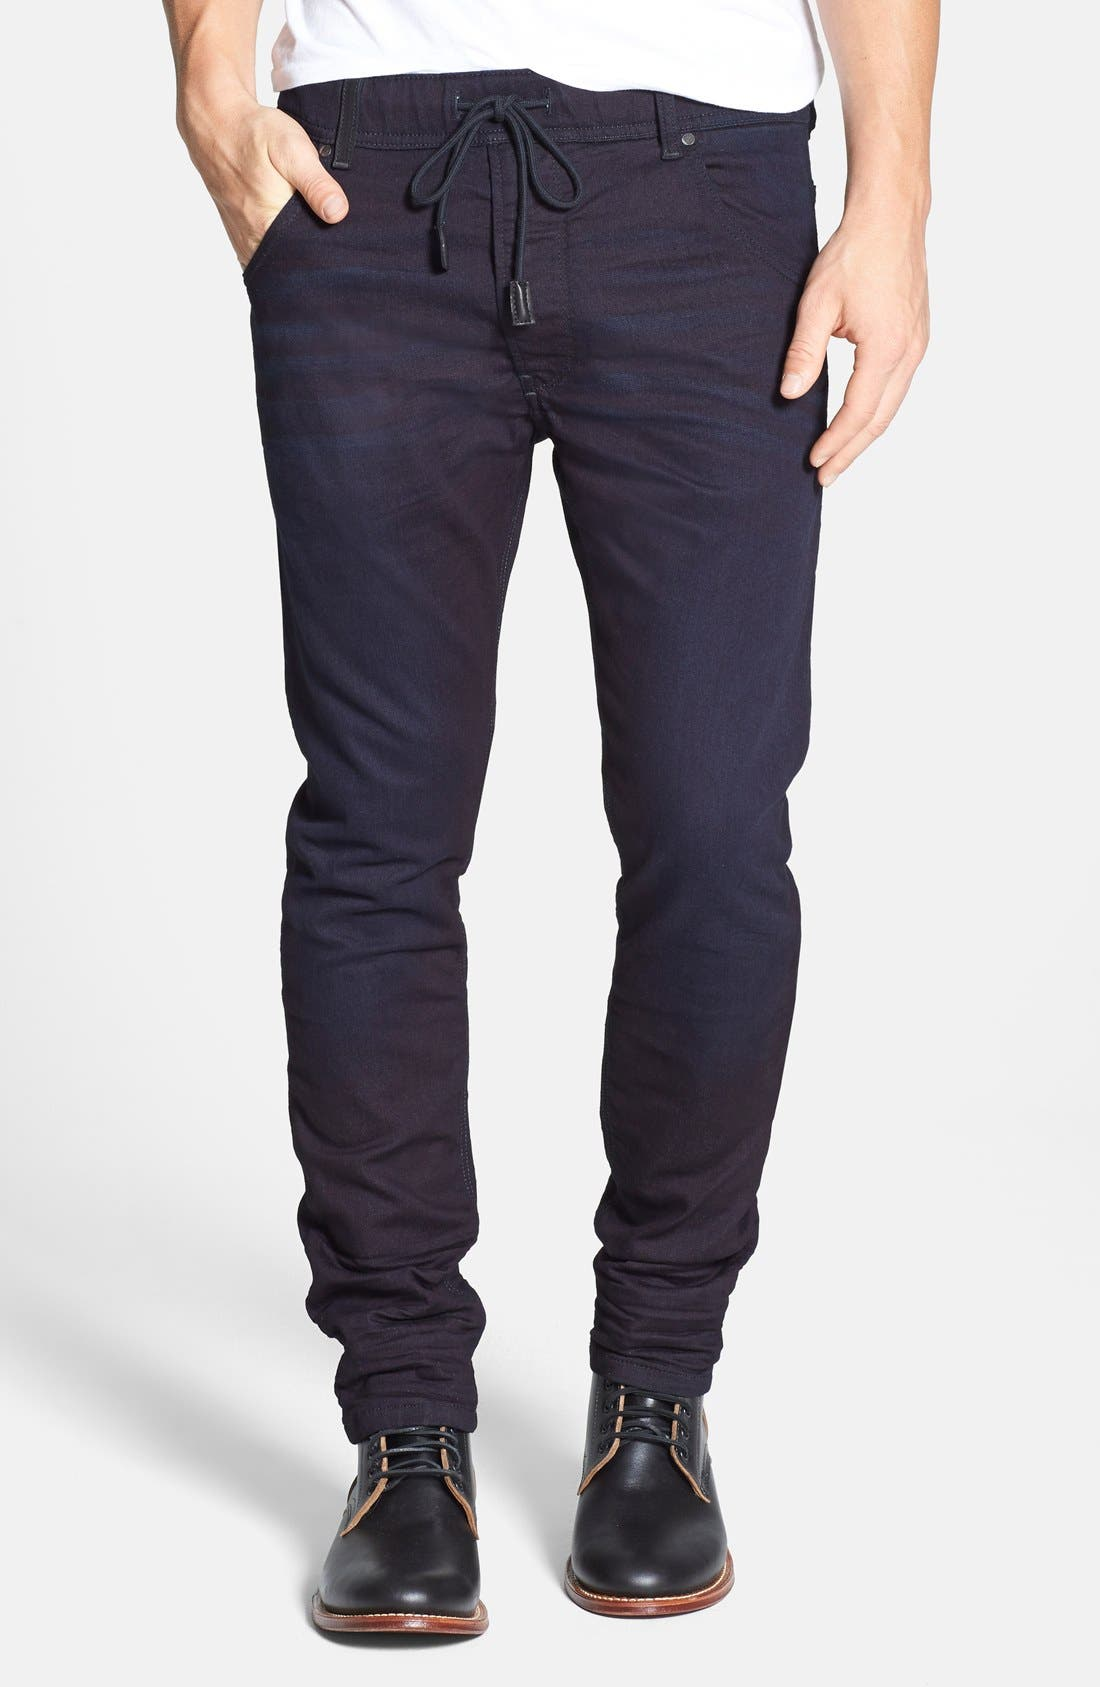 Krooley Jogg Slouchy Skinny Fit Jeans,                         Main,                         color, 0829P